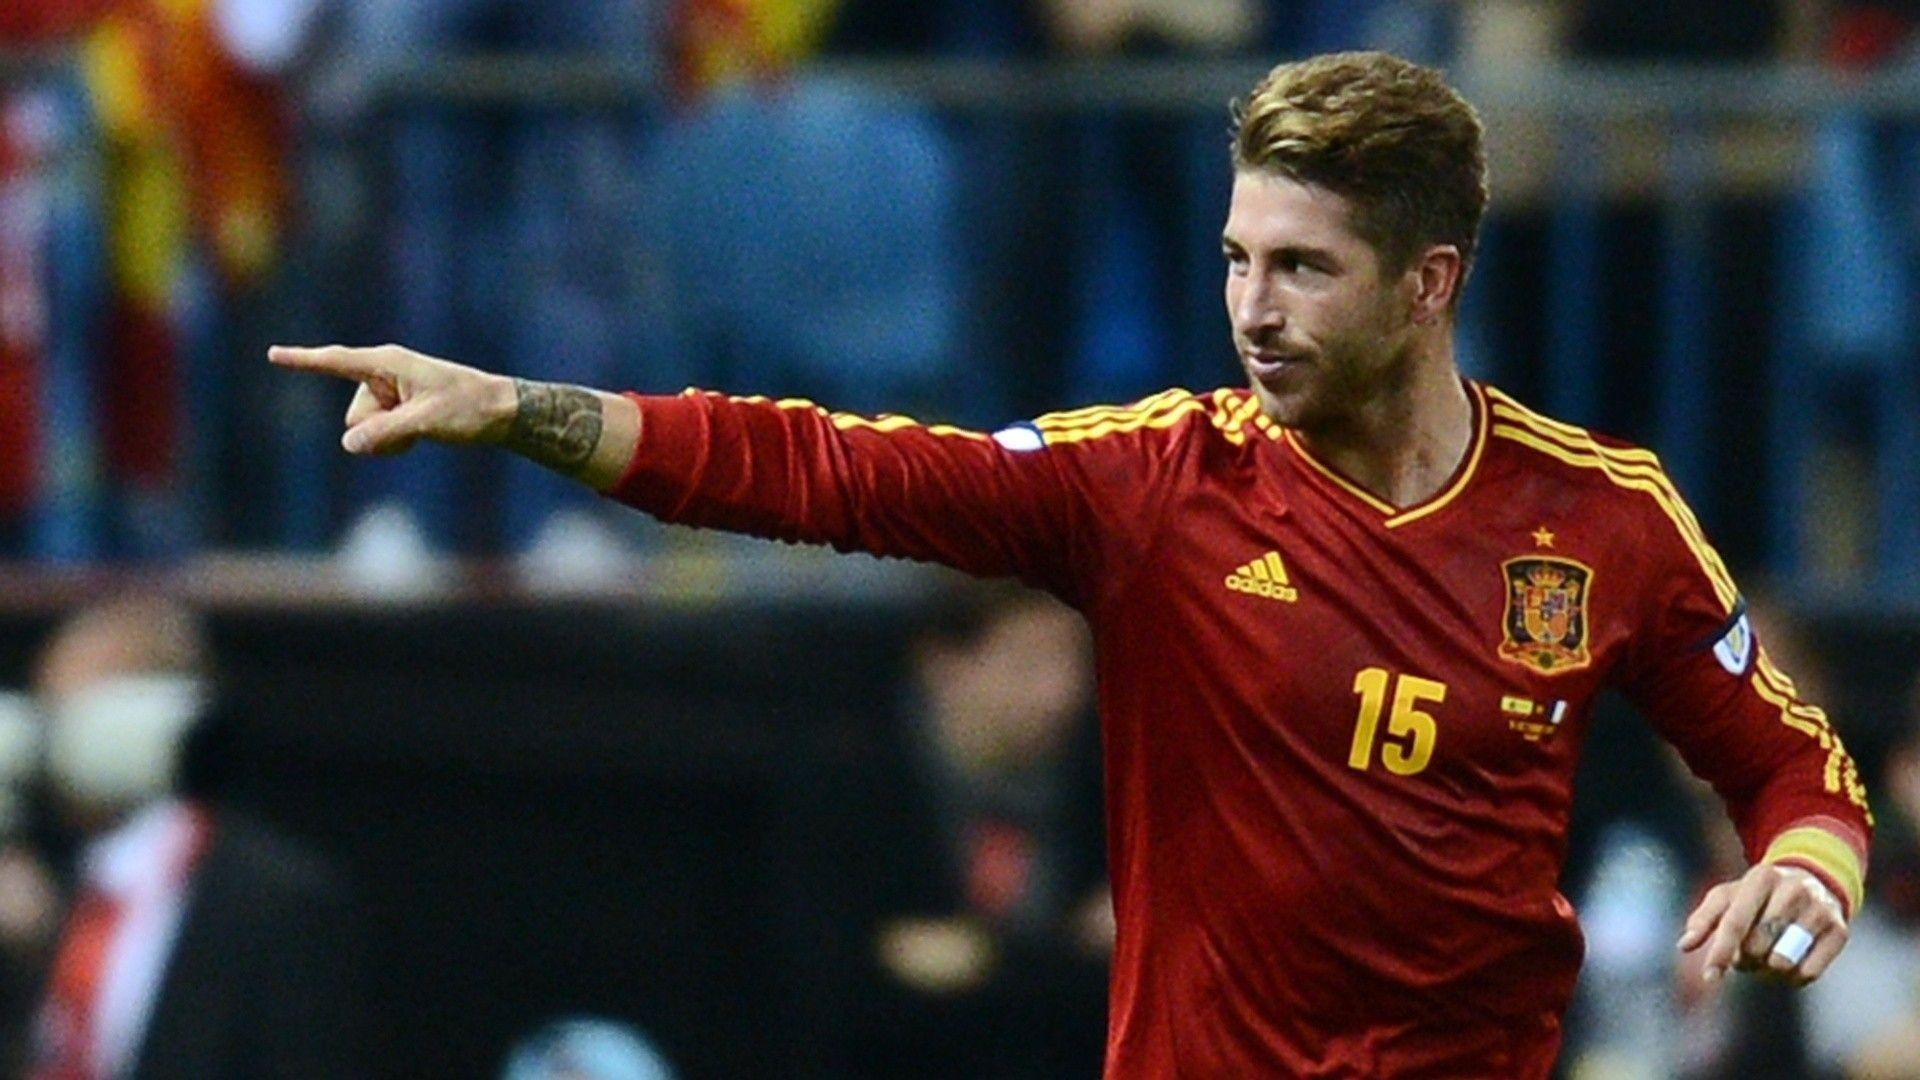 1920x1080 Sergio Ramos HD Wallpapers - HD Wallpapers Backgrounds of Your Choice